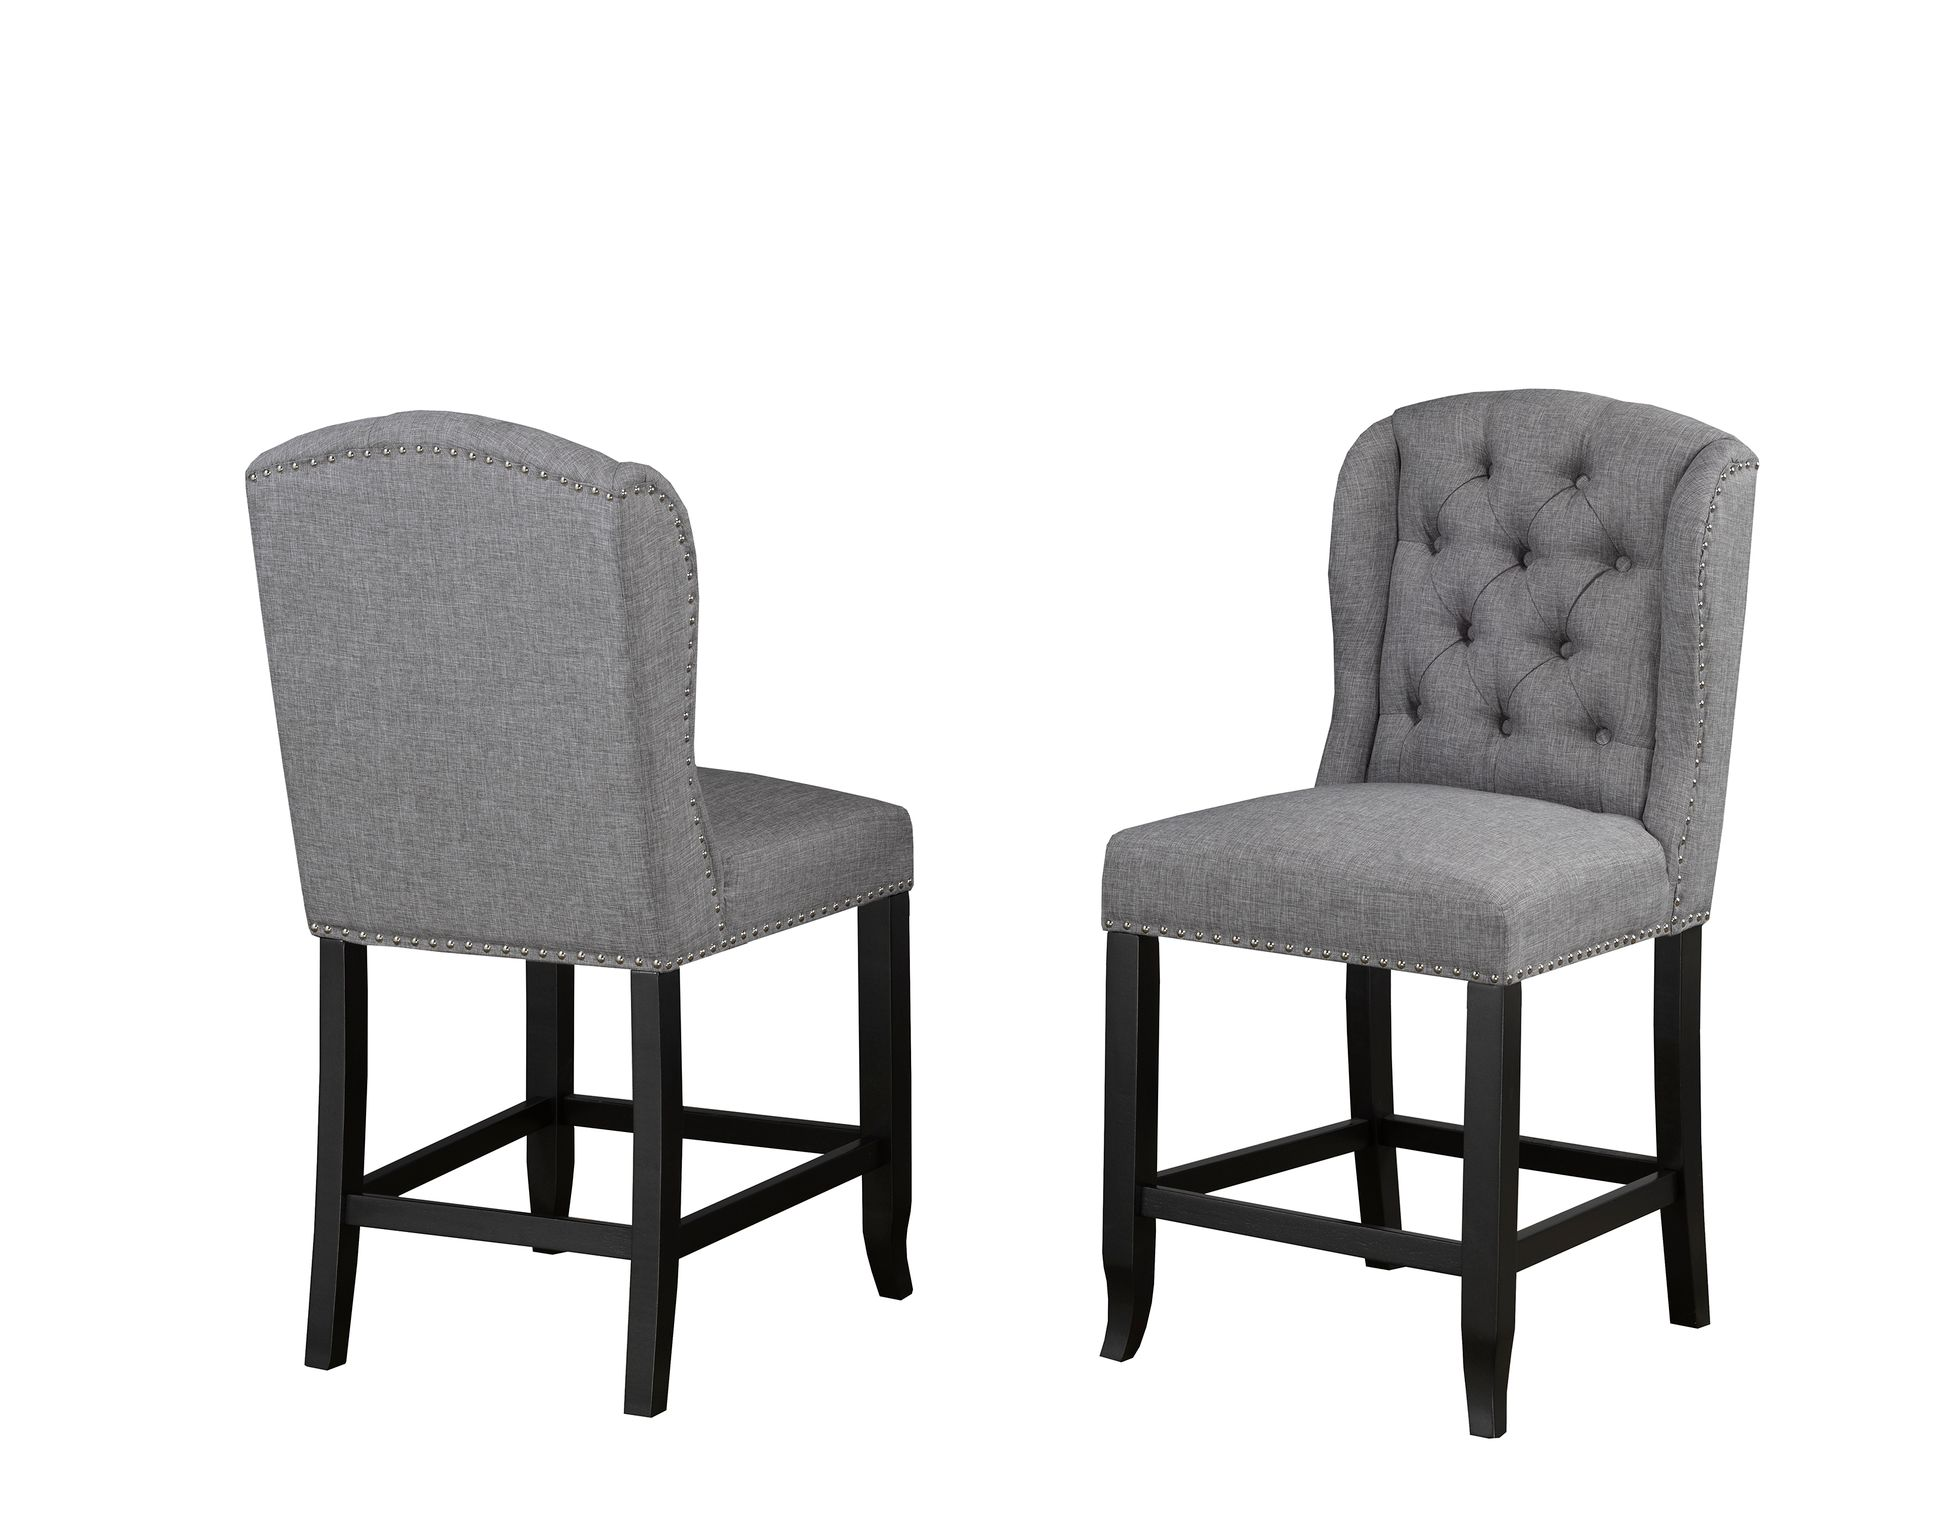 MEMPHIS 24' BARSTOOL GREY FABRIC (BAR STOOL SET OF 2 )